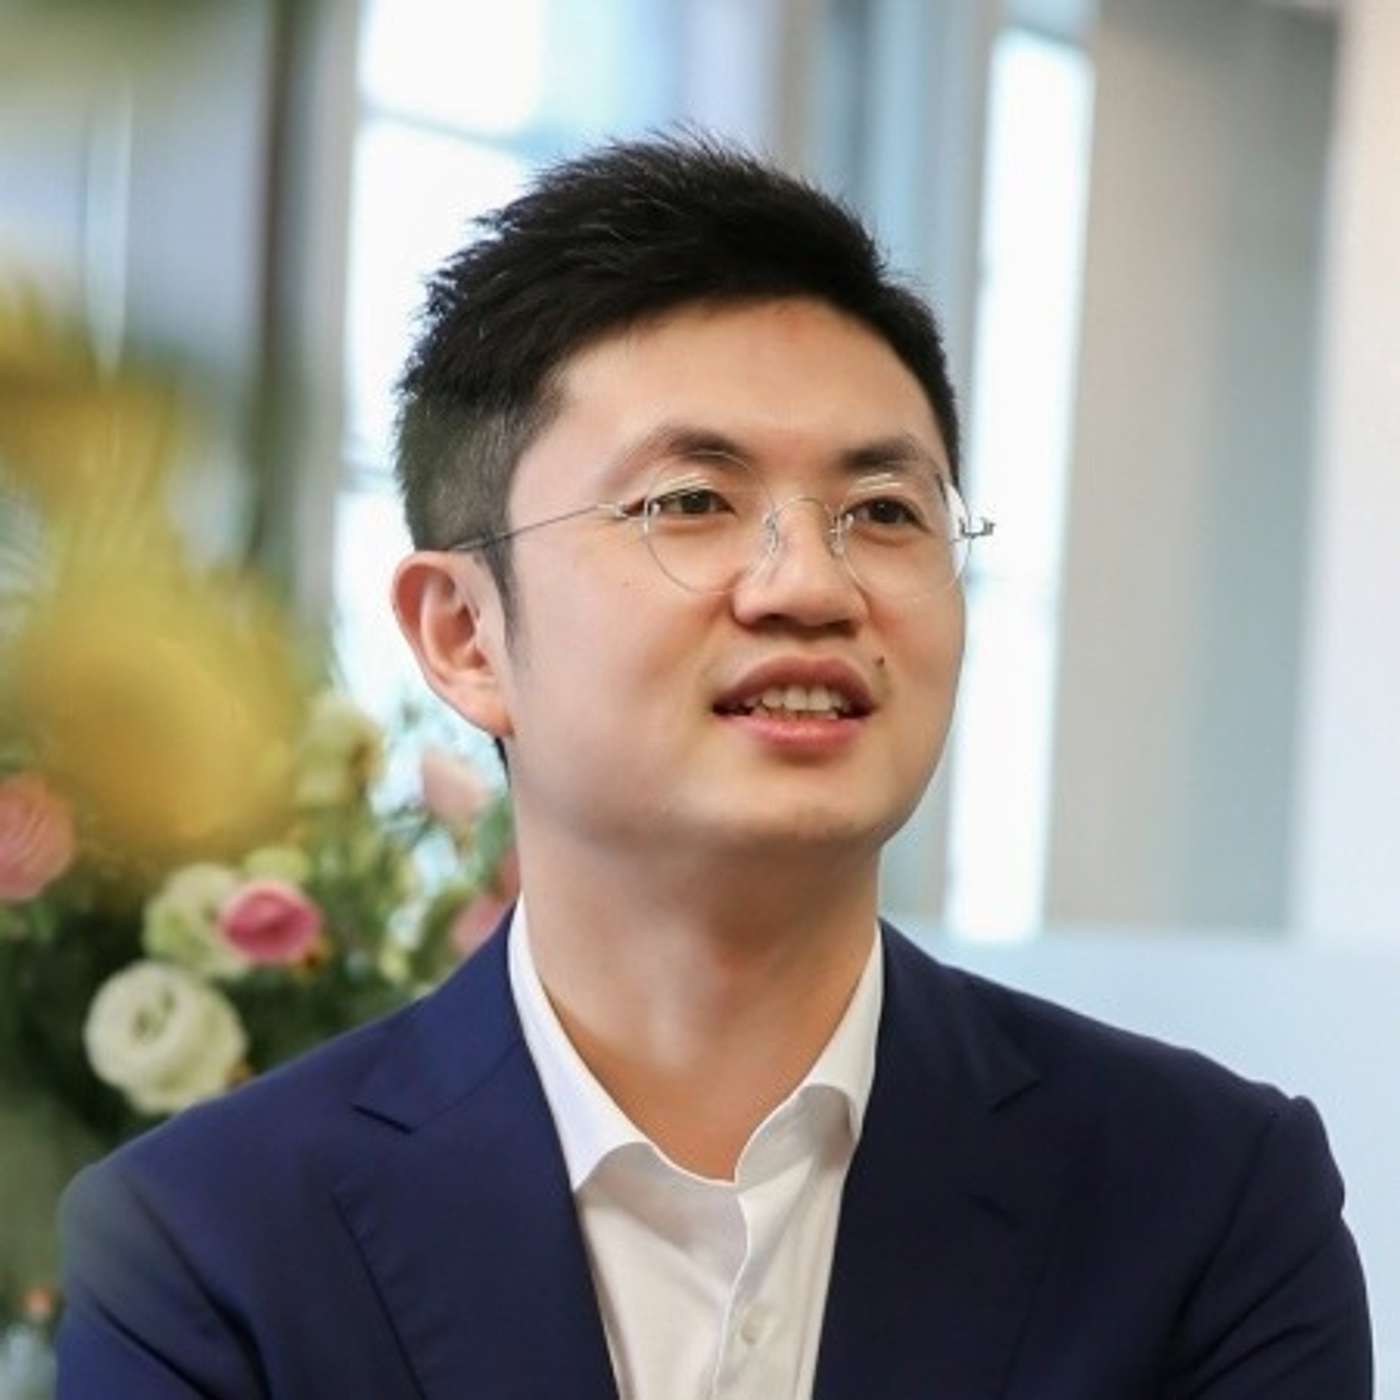 Investing in Risks with Peter Mao, Co-founder of Panda Capital